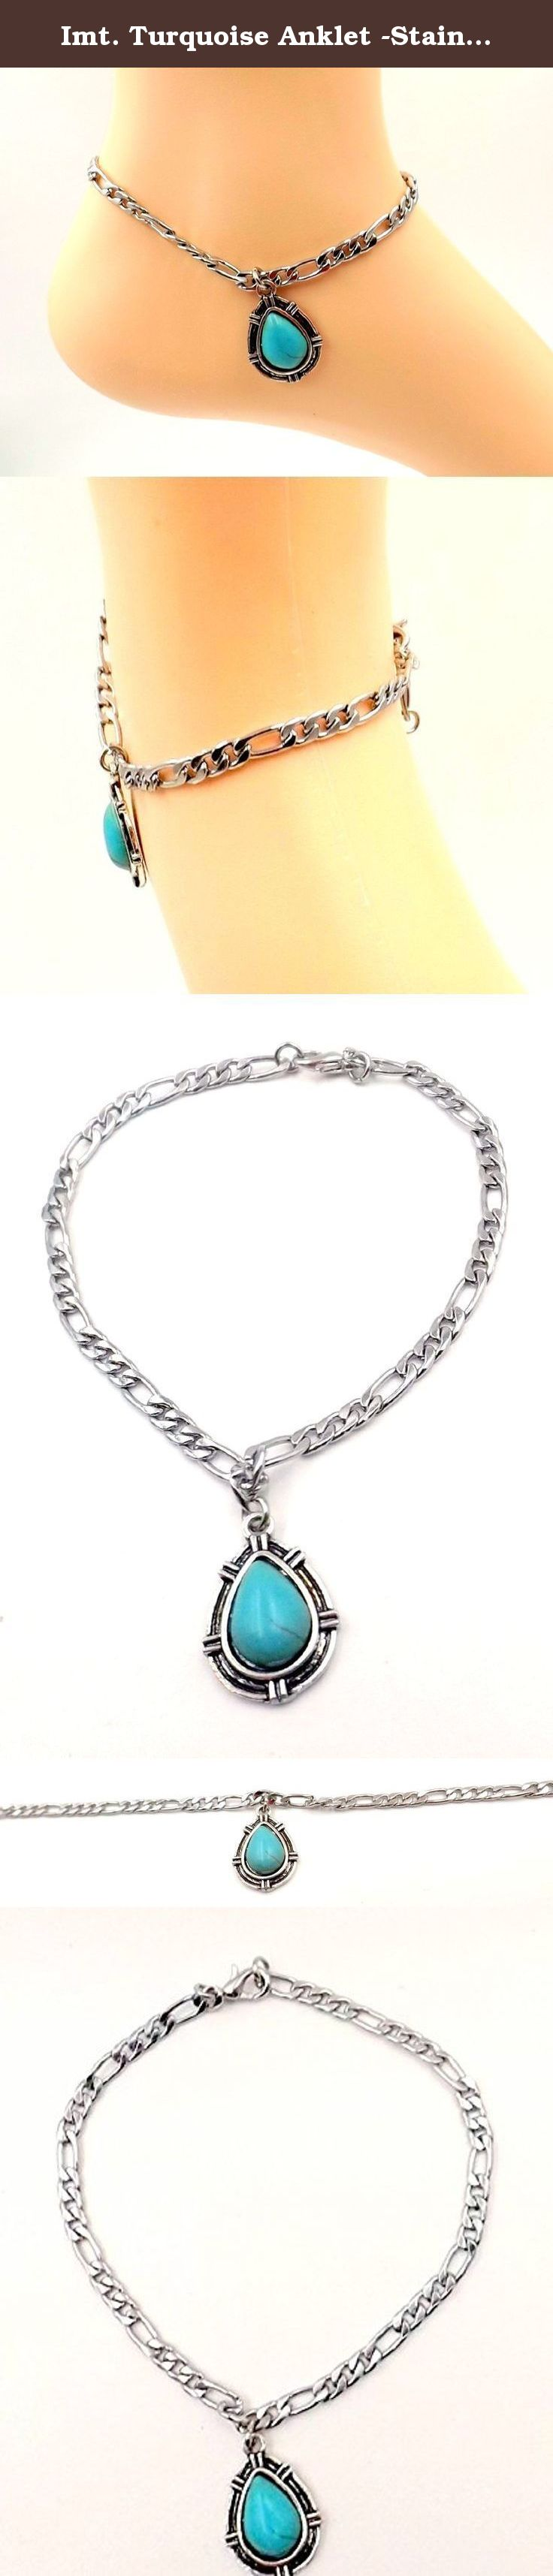 rolo sterling sizes necklace rhodium all cha over anklet chain for plated silver bracelet pendant